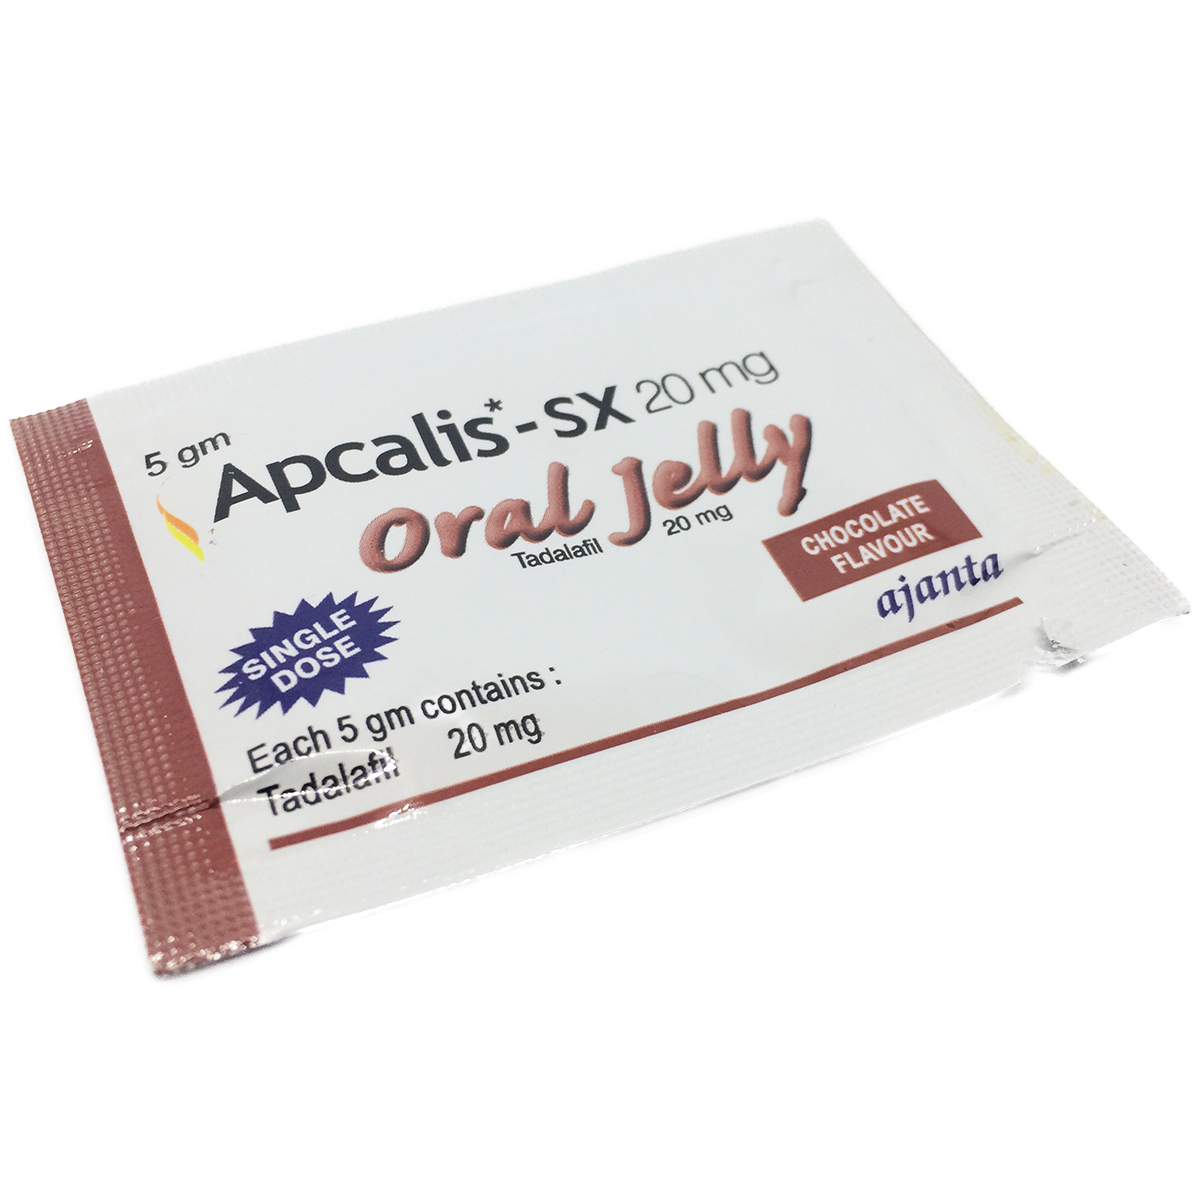 Apcalis-sx Oral Jelly x 28 шт